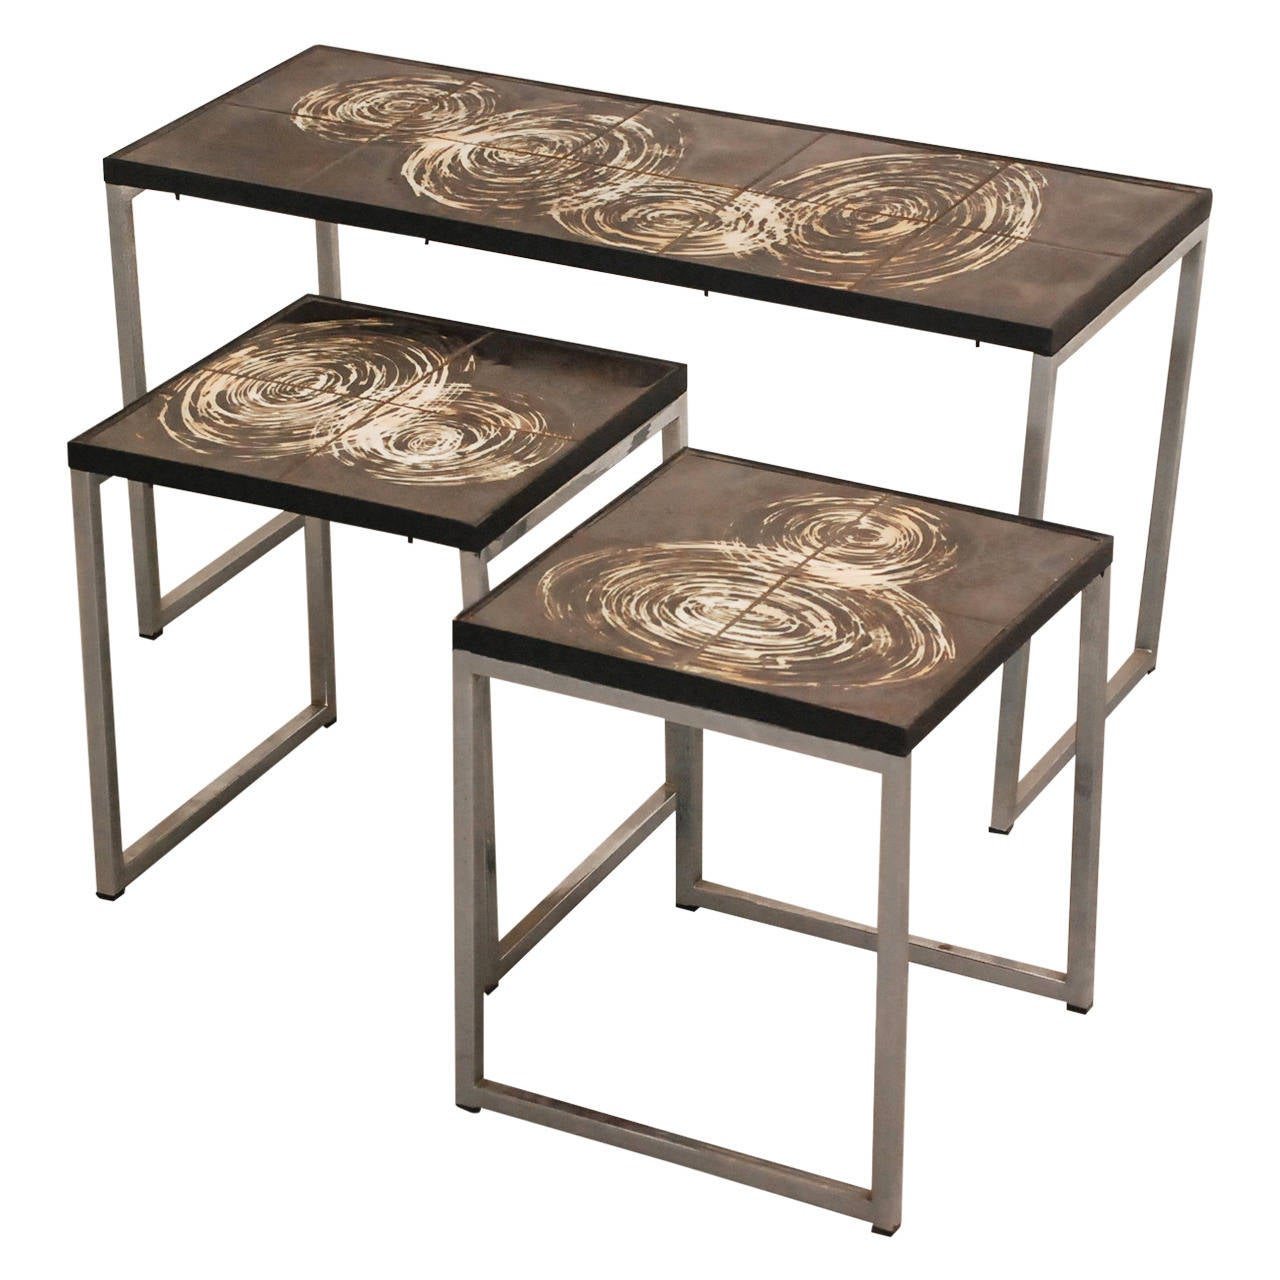 Belarti coffee table with two side tables with hand painted tiles at 1stdibs Painted coffee table